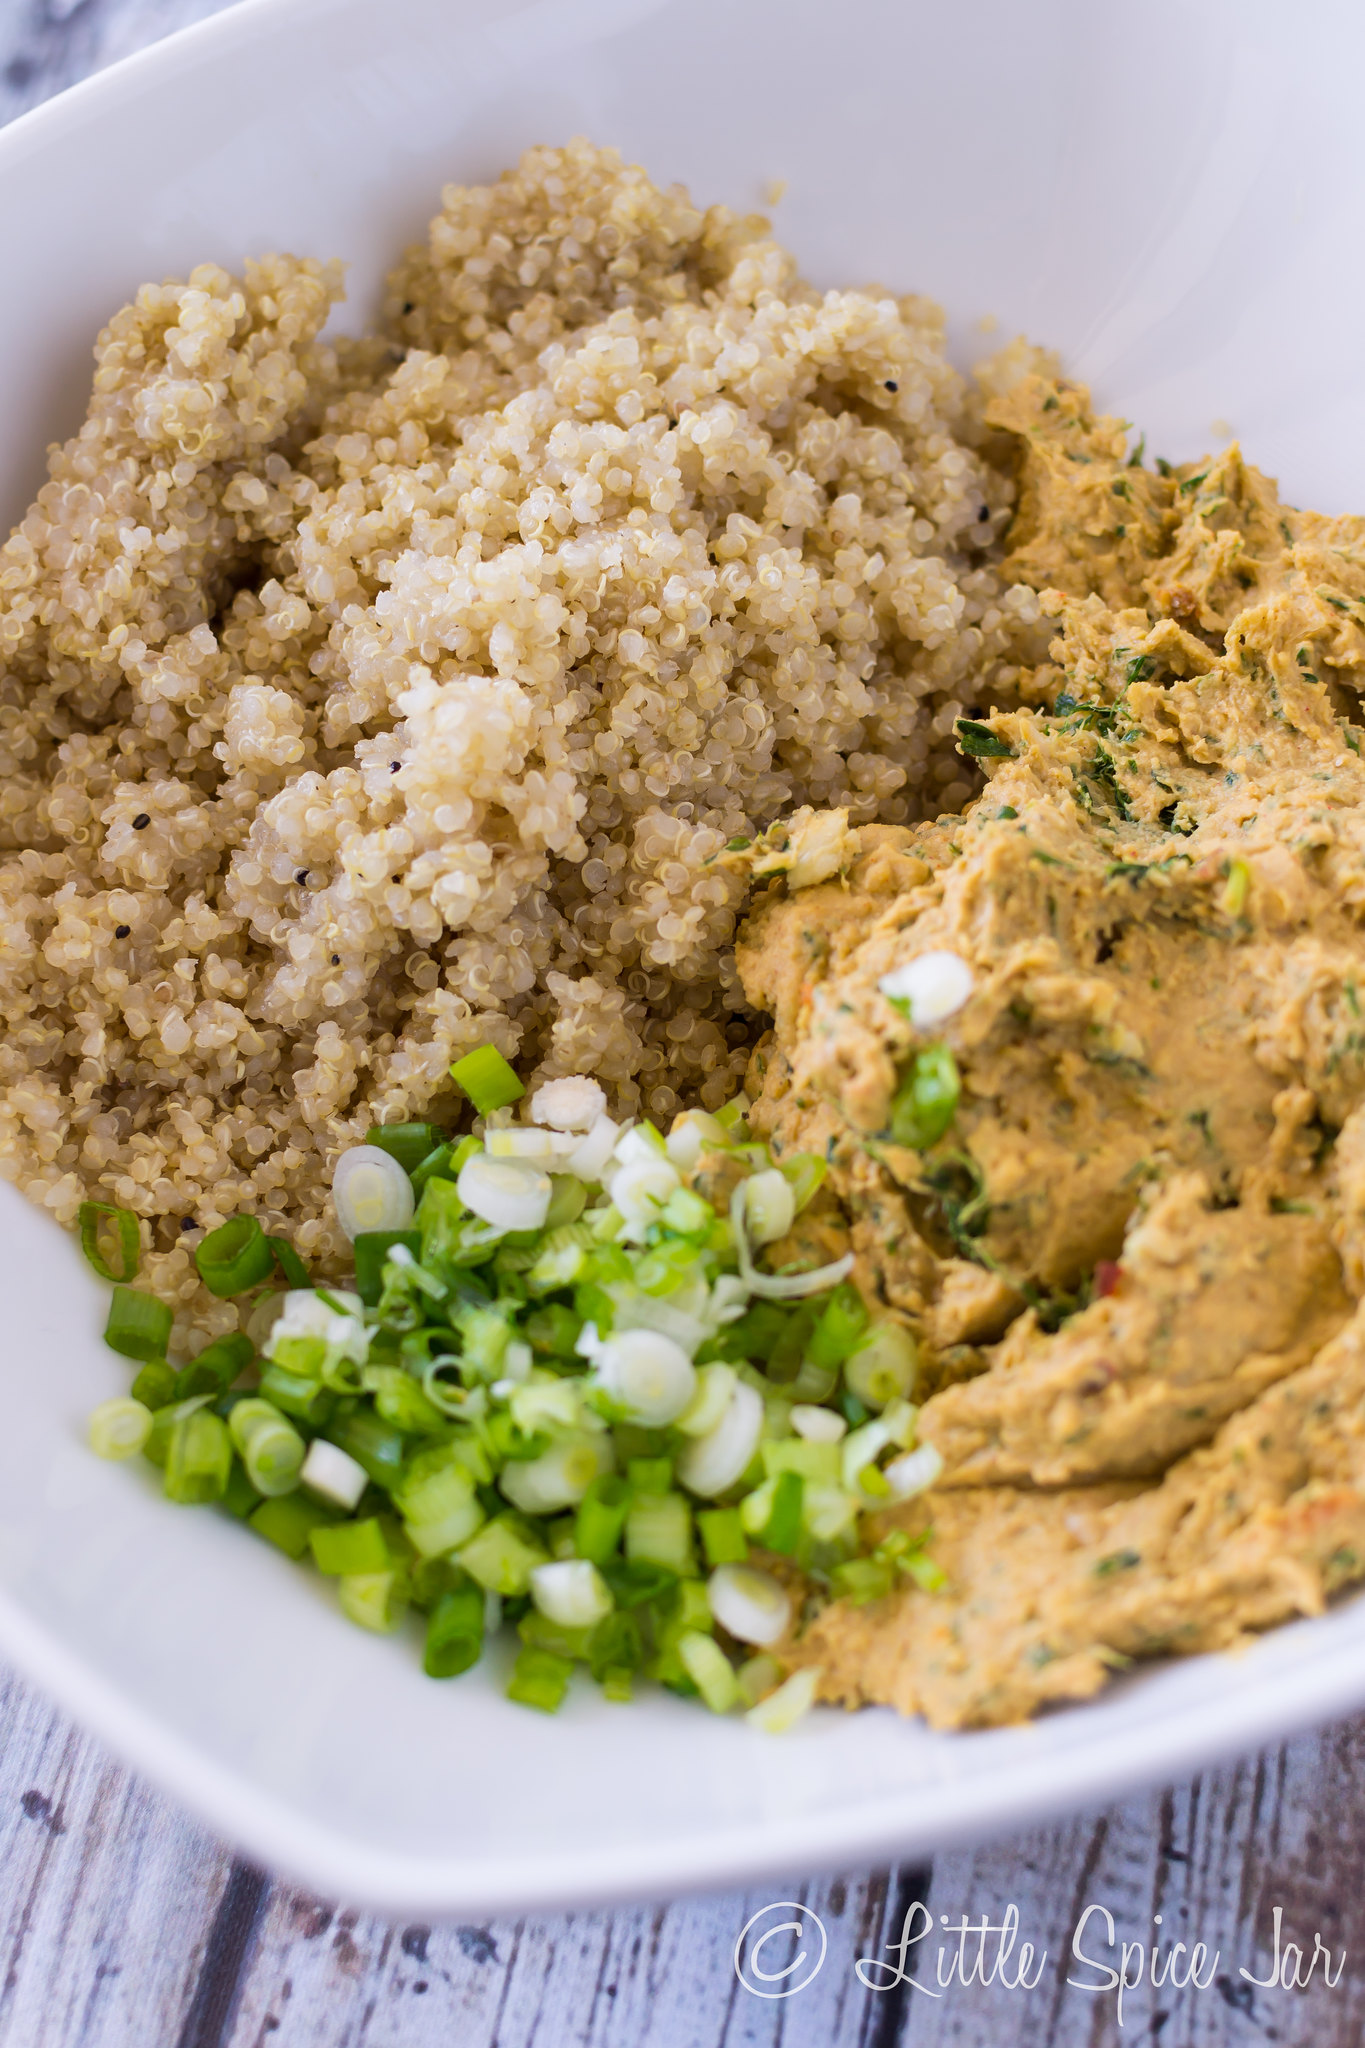 quinoa, falafel mixture and chopped scallions in white dish